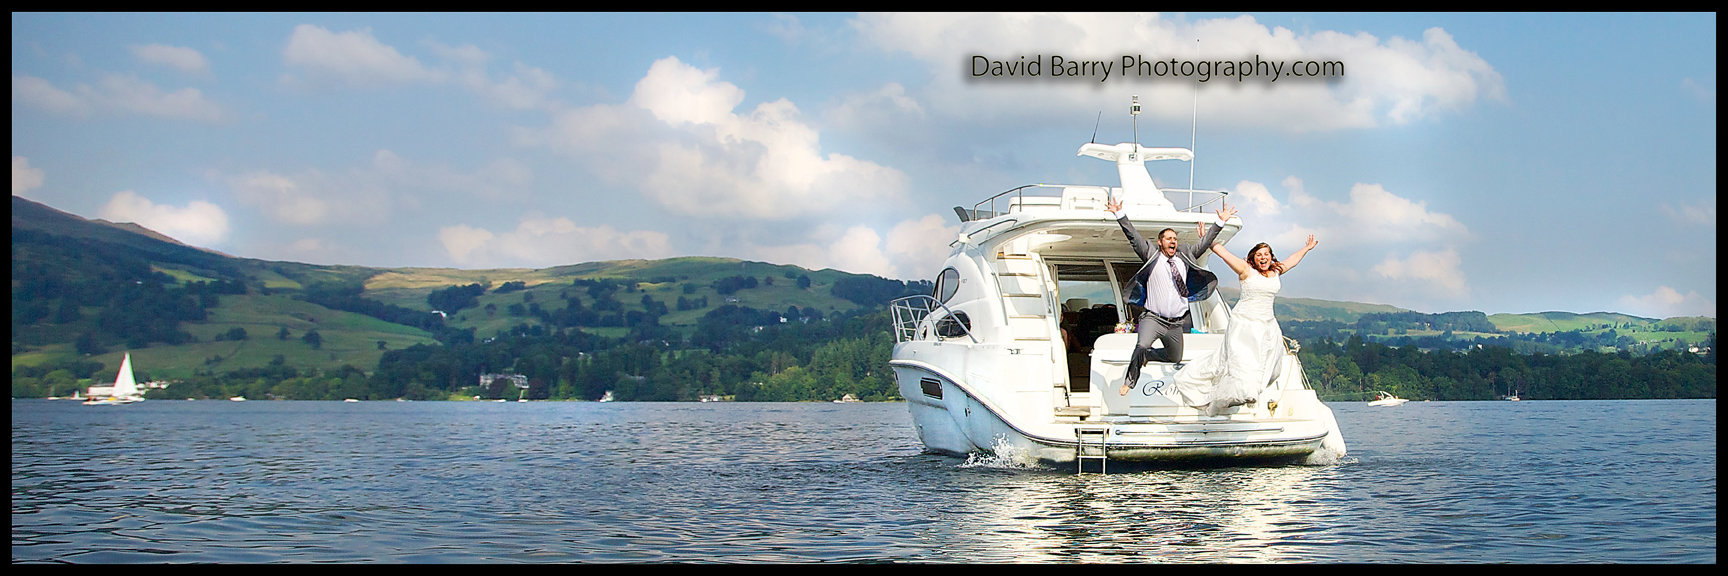 Windermere Boat Jump